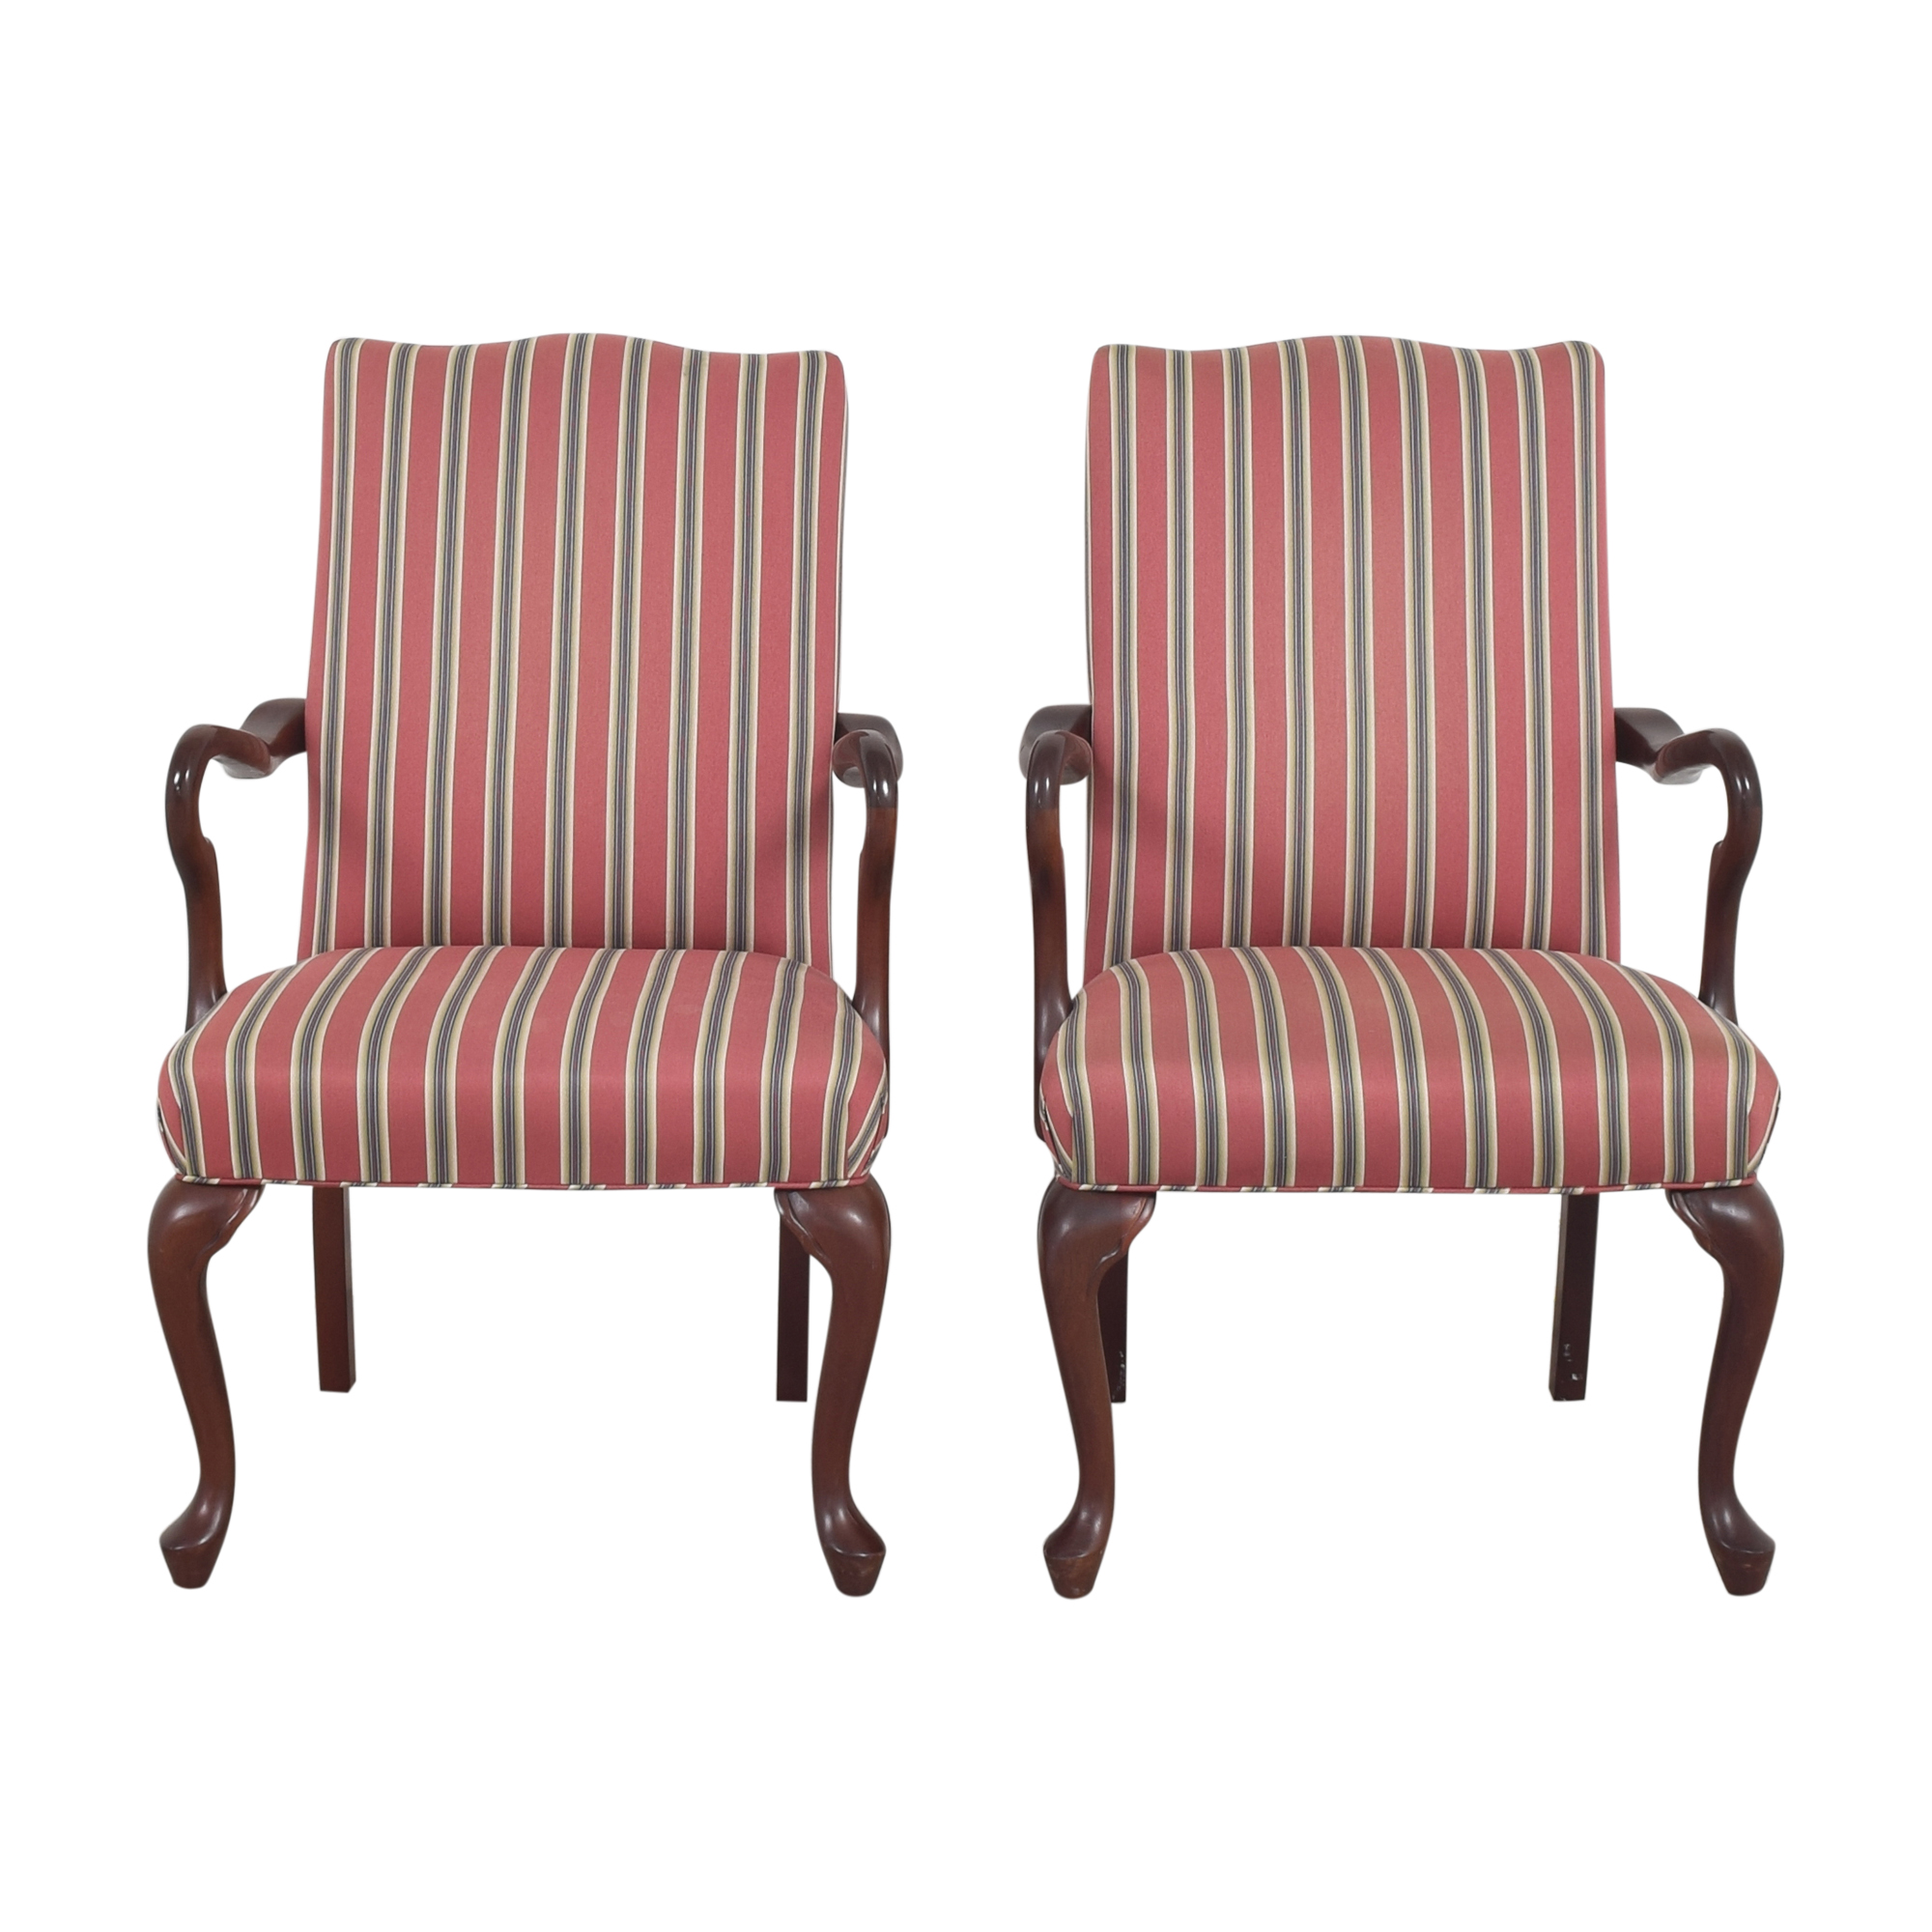 Haworth Stripe Dining Arm Chairs / Dining Chairs